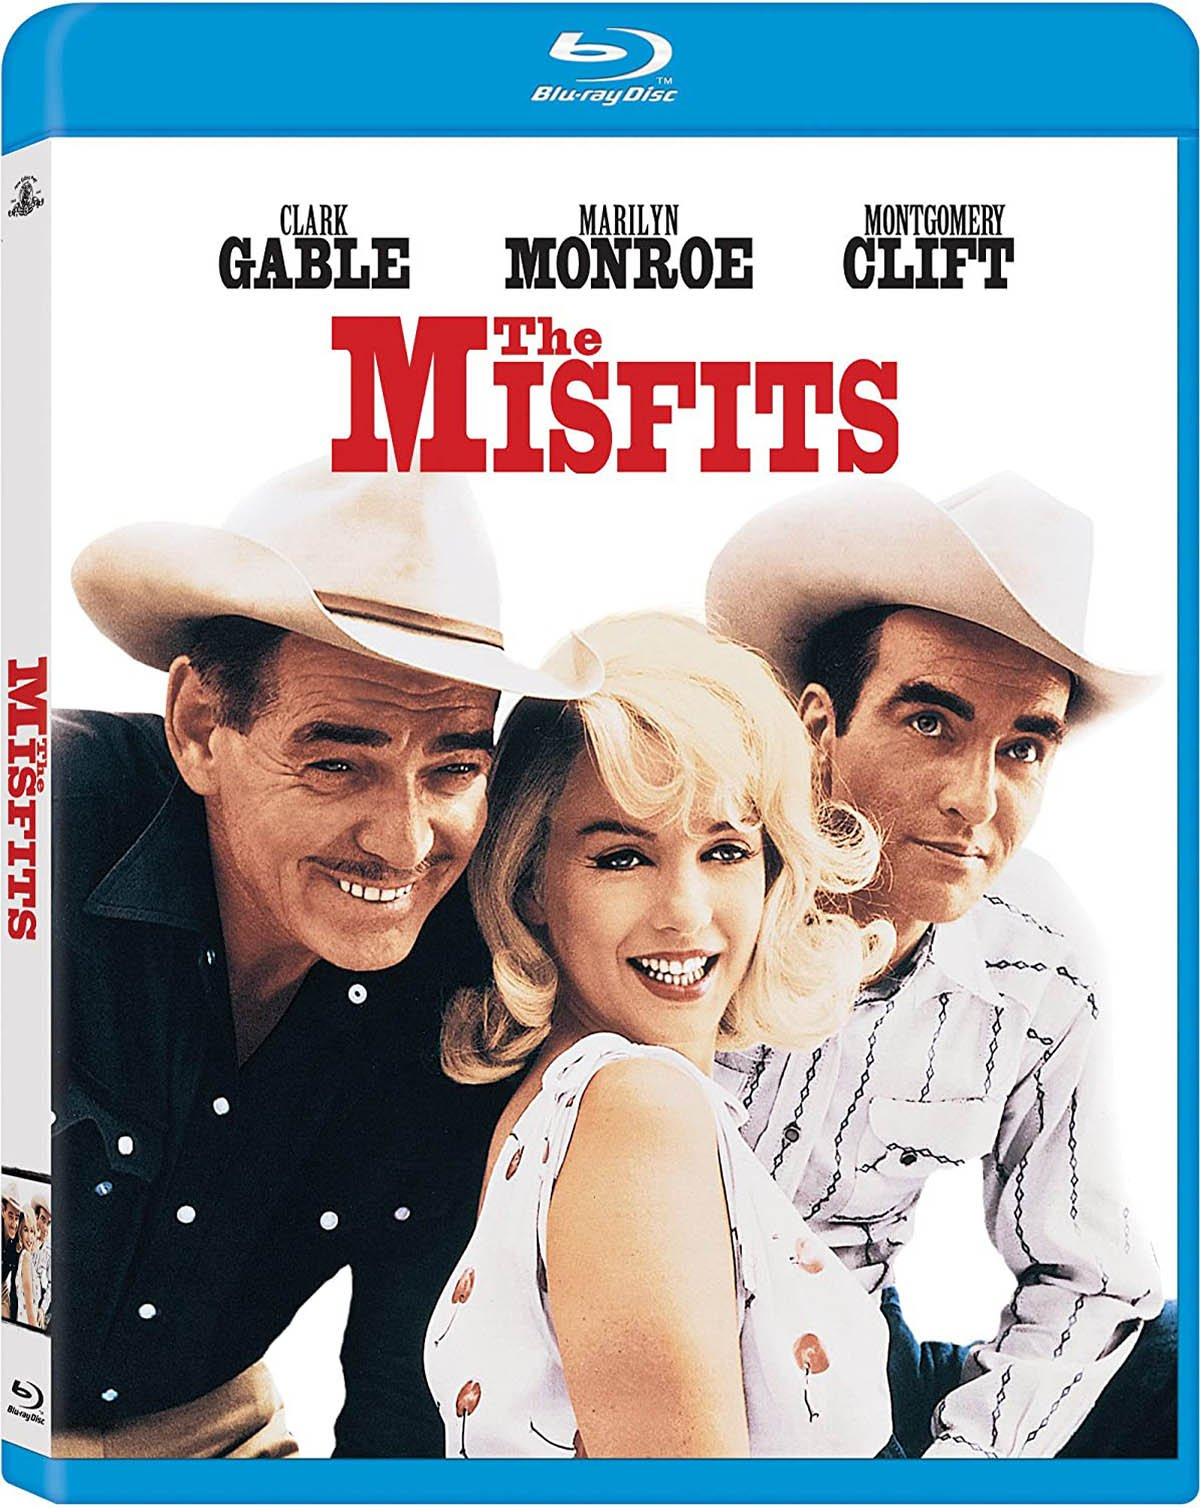 826daca5e59 Blu-ray Review  The Misfits - Slant Magazine